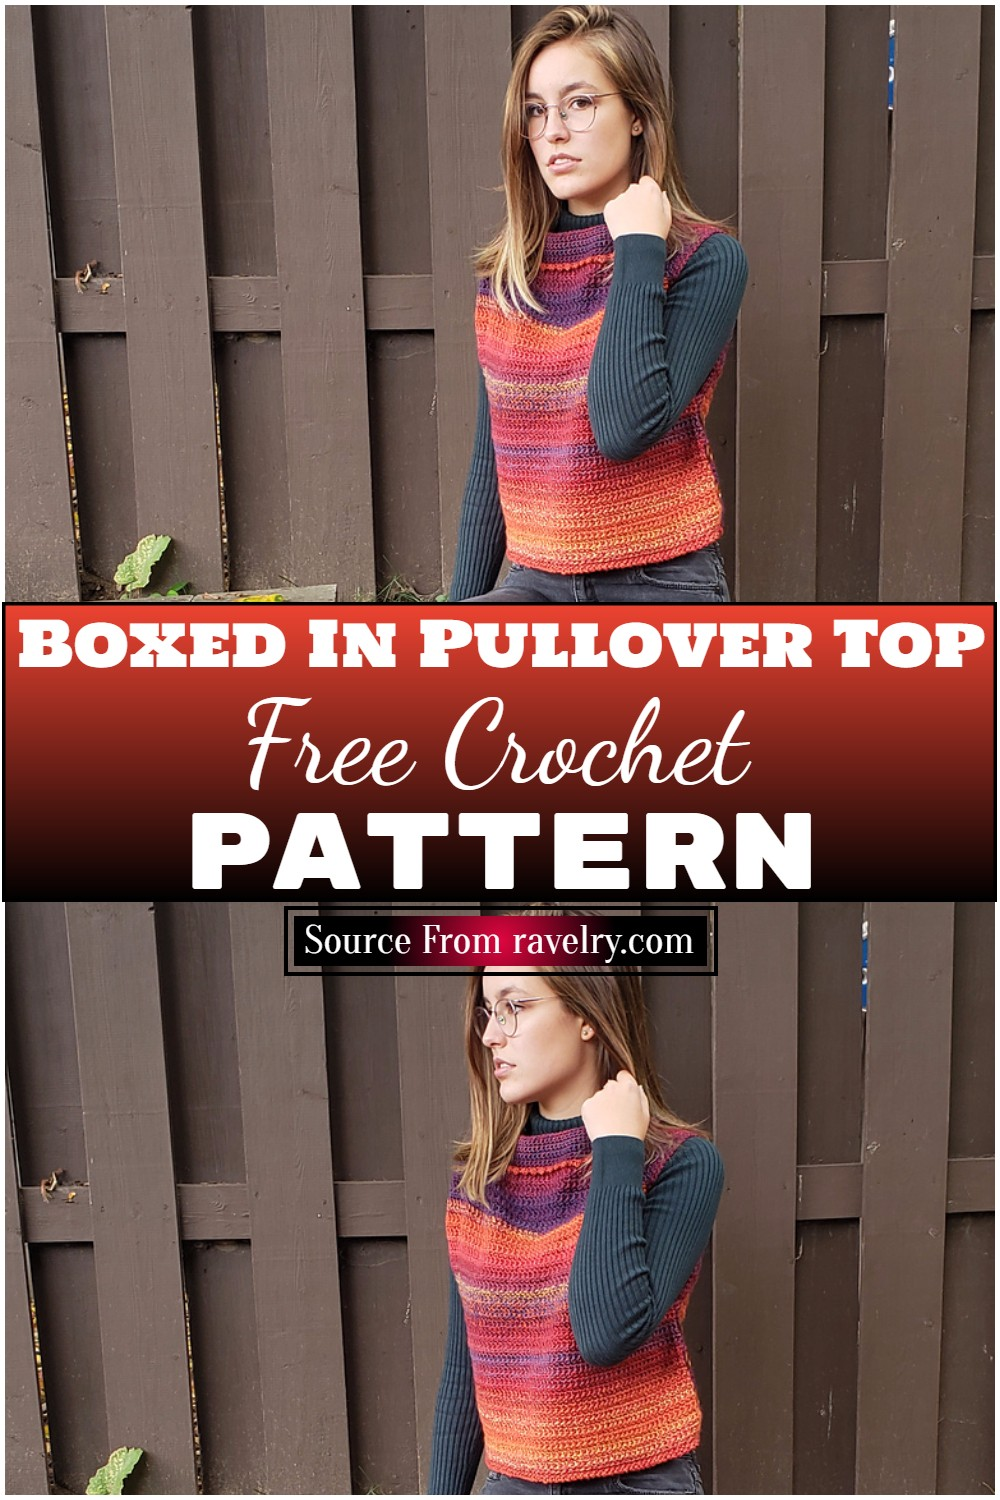 Free Crochet Boxed In Pullover Top Pattern